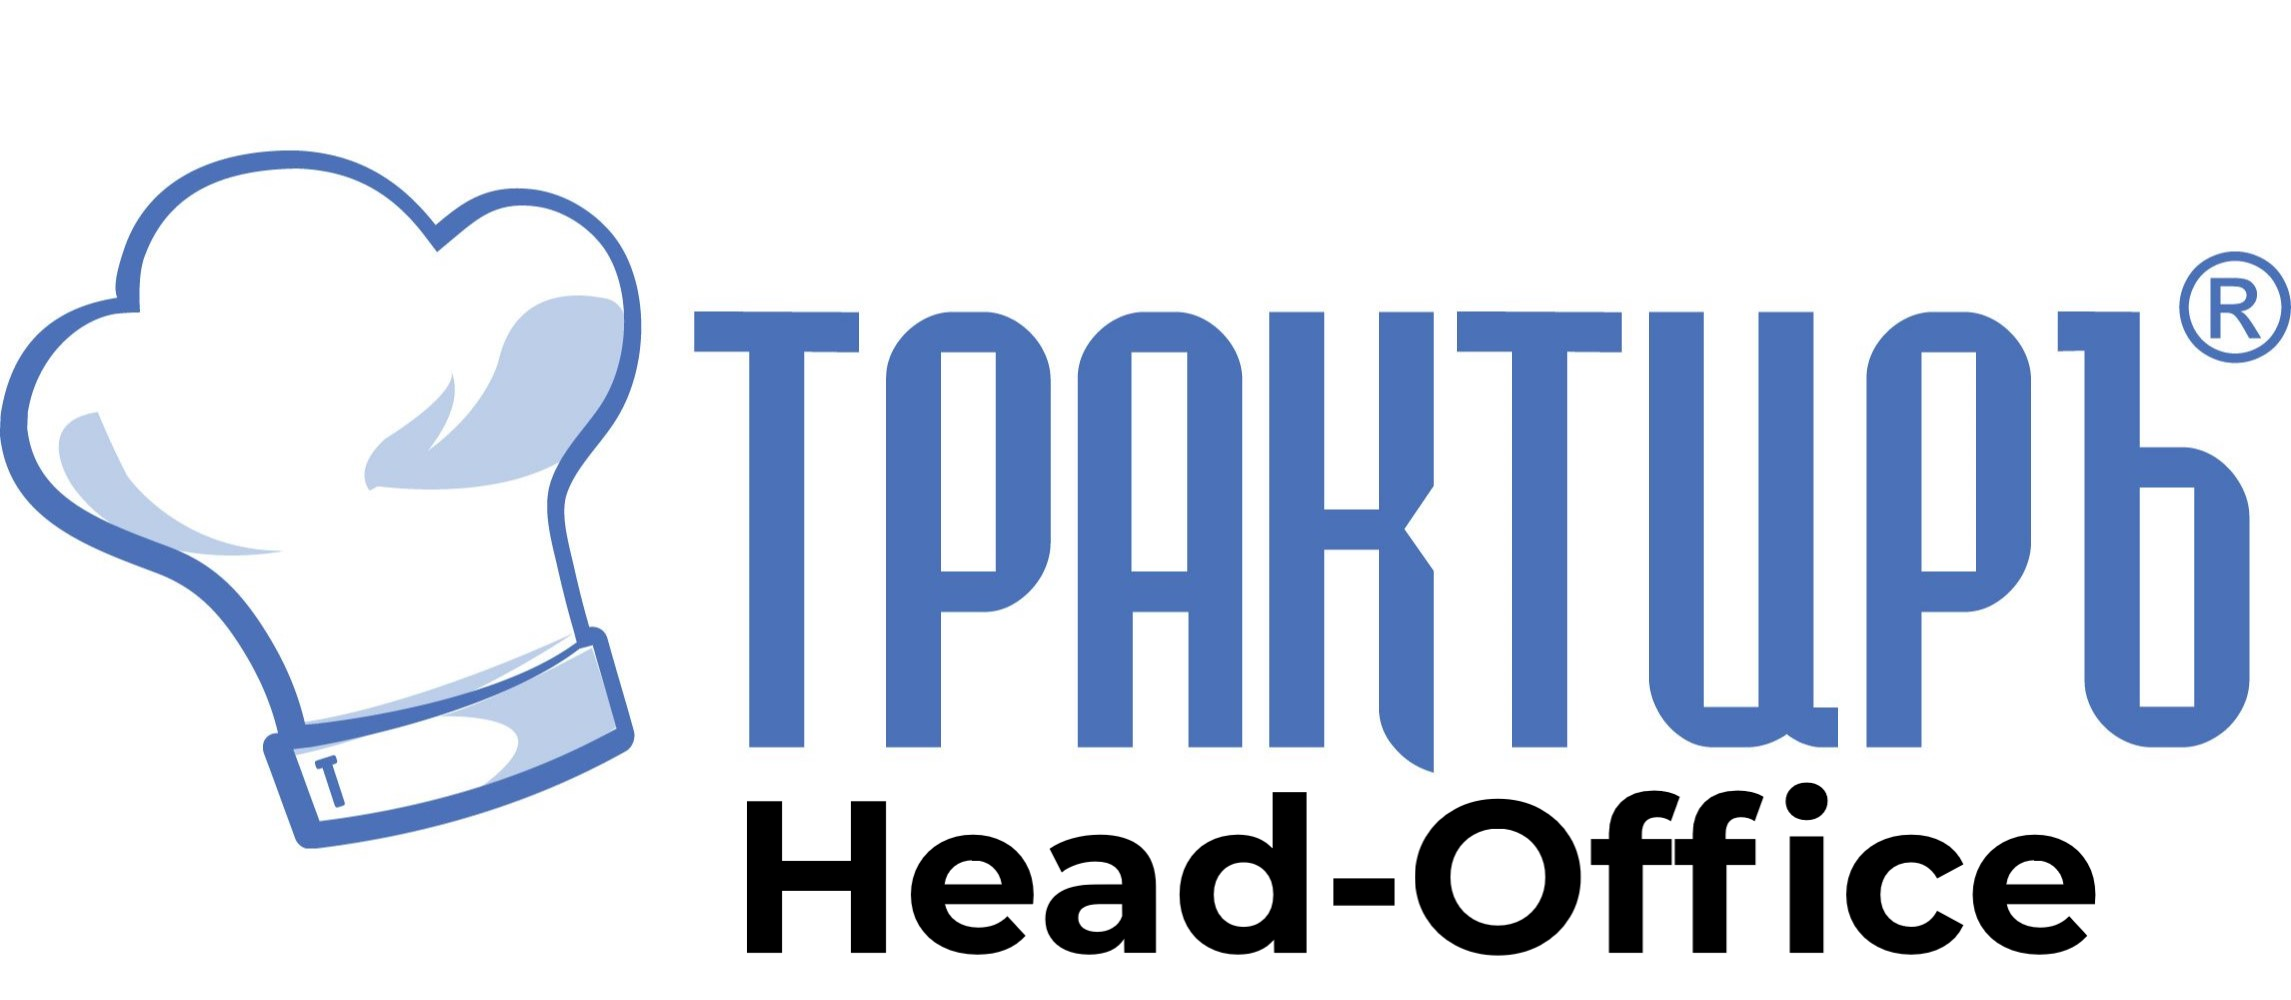 Трактиръ: Head-Office в Астрахани